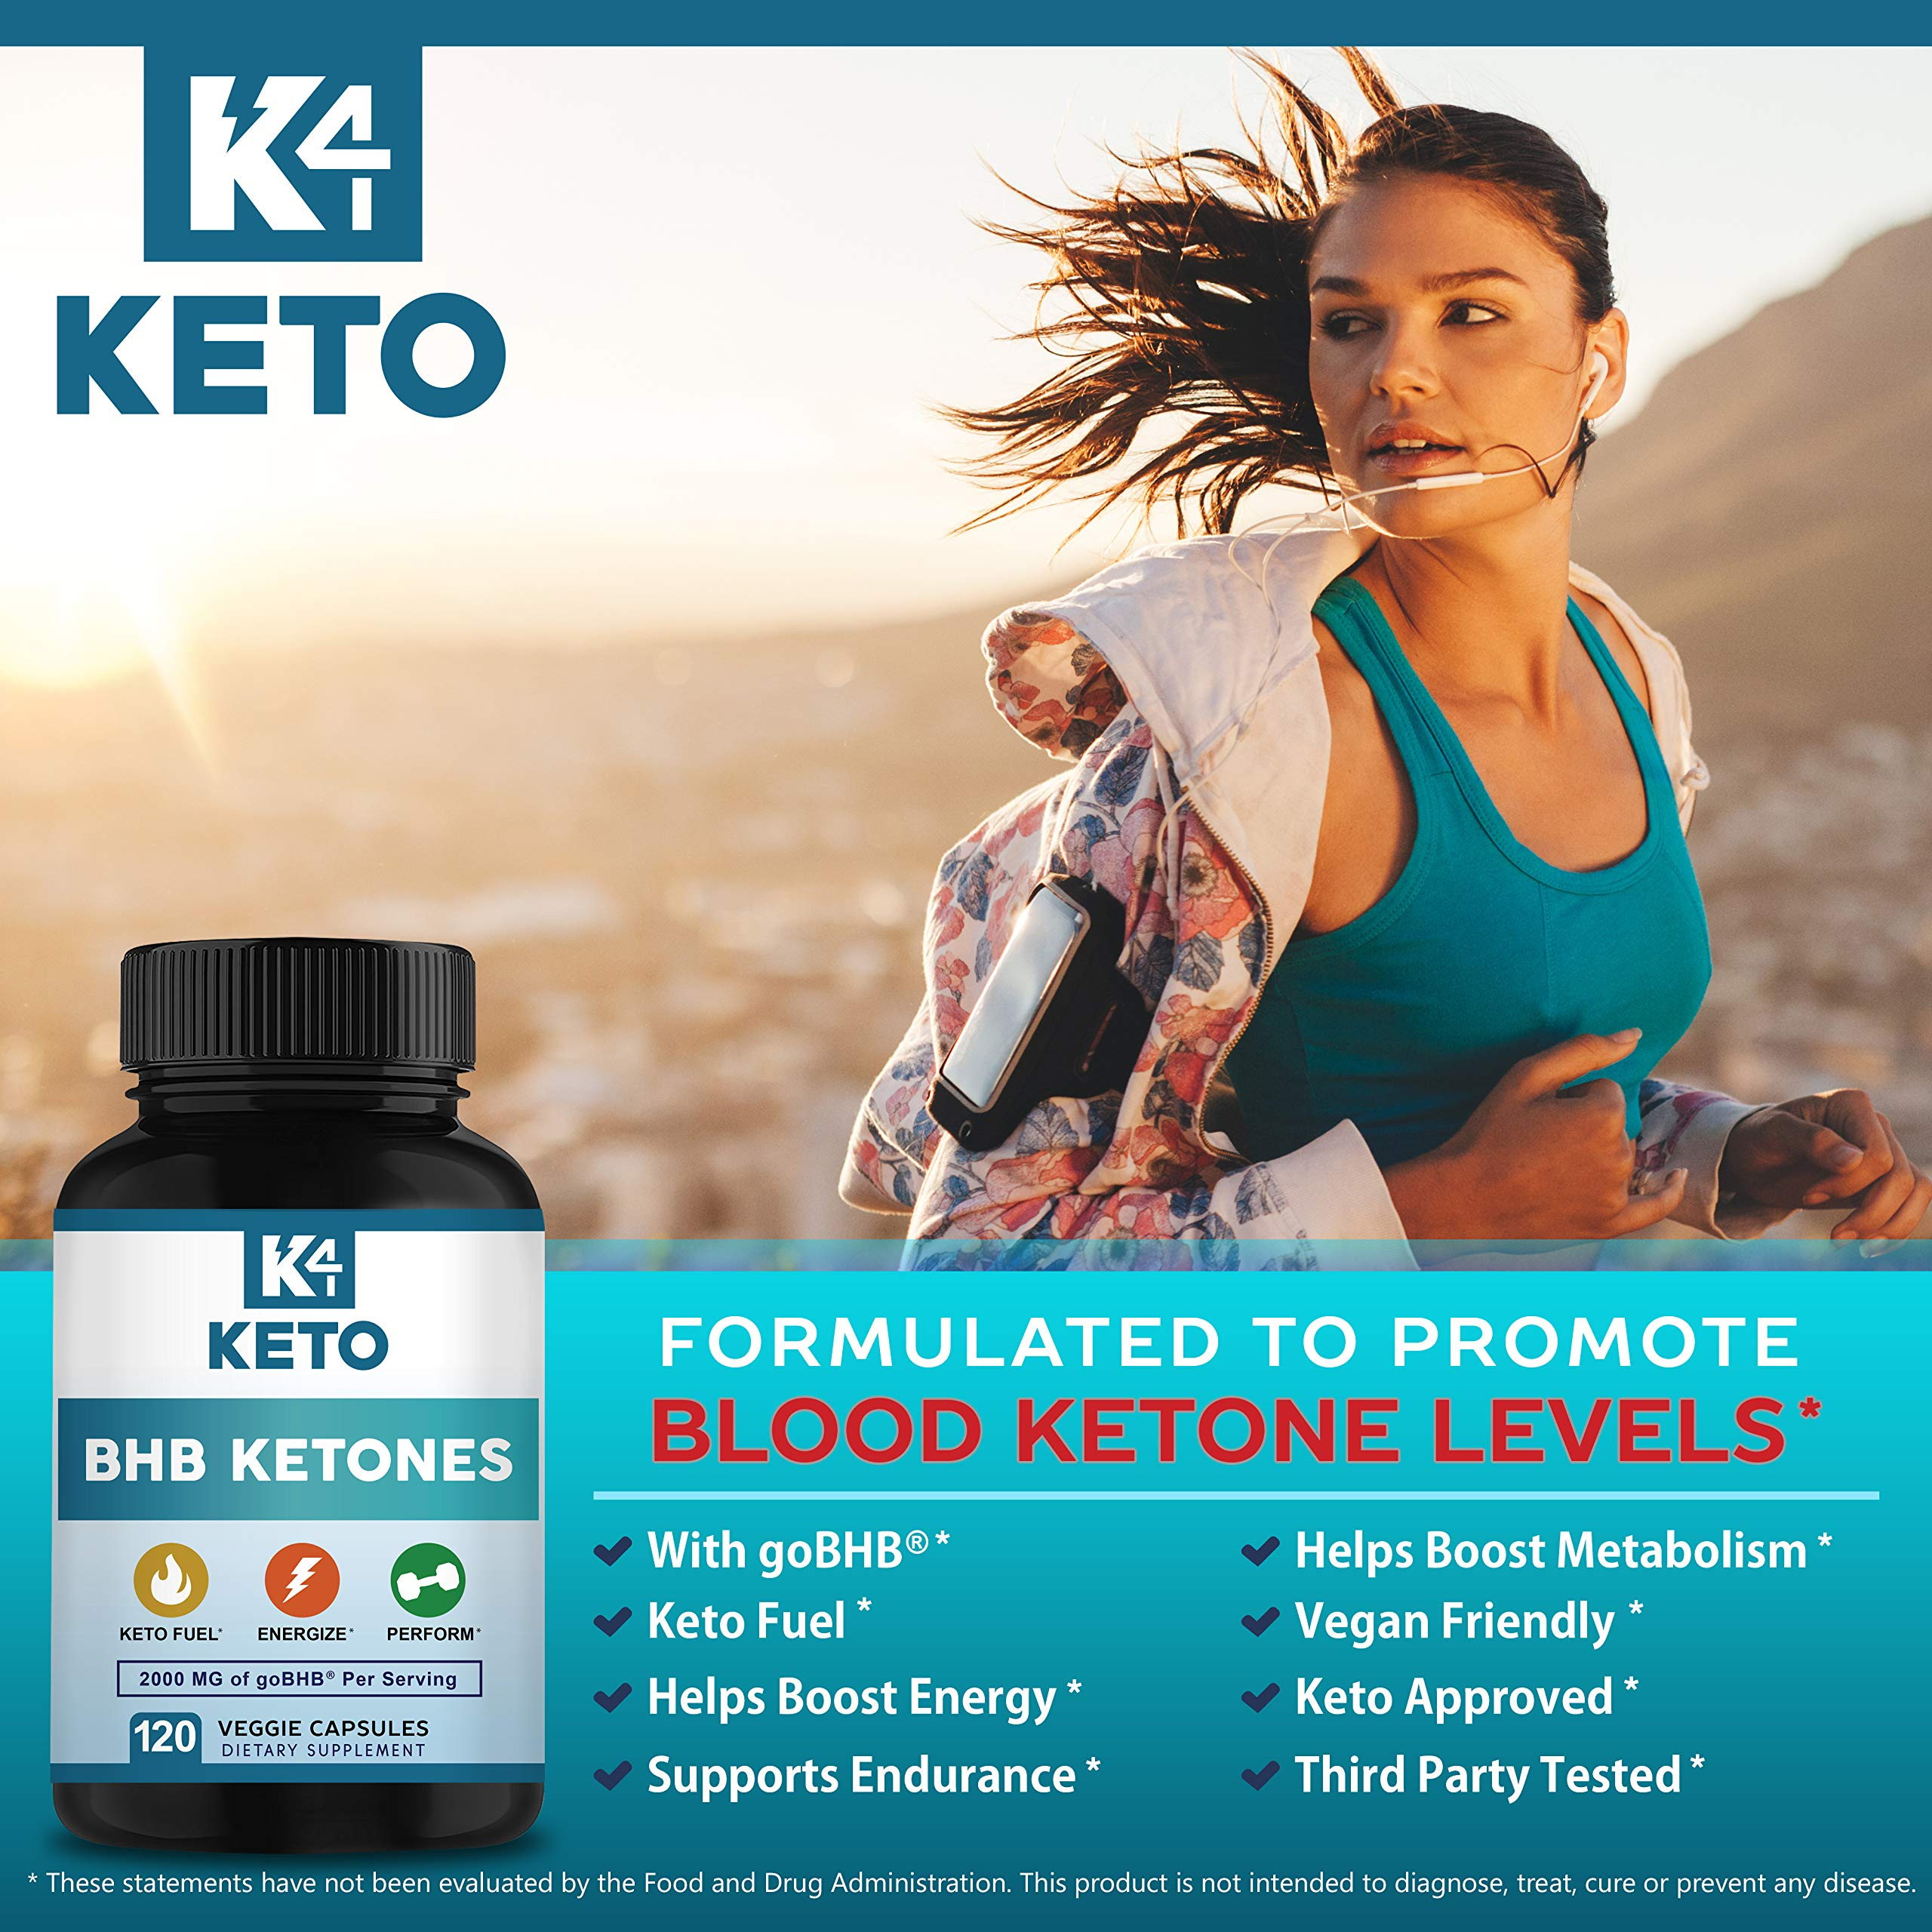 K4 Keto BHB - Exogenous Ketones BHB Salts Capsules - 2000mg of Patented goBHB Beta-Hydroxybutyrate - Ketone Supplement Pills to Support Ketogenic Diet & Ketosis by K4 Keto (Image #5)